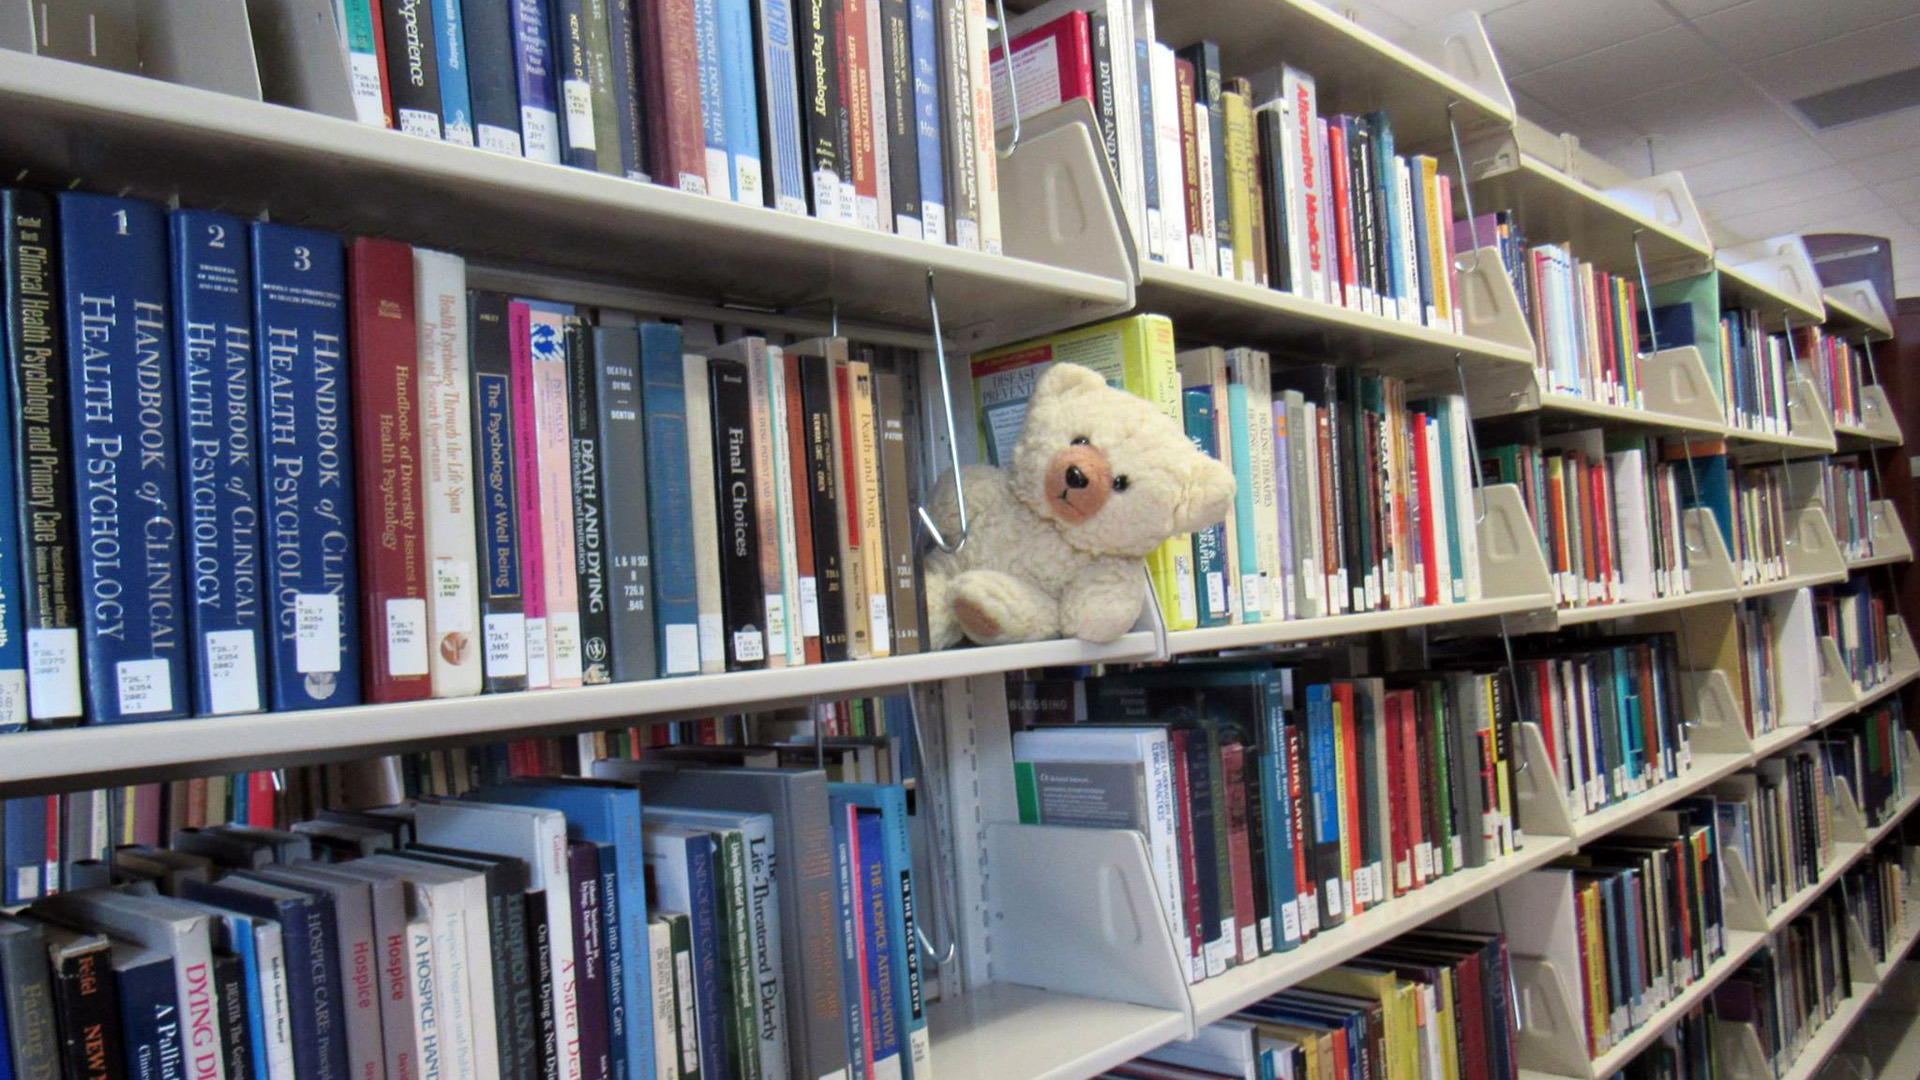 Ambyr Noelle buried in the book stacks at the University of Nevada, Reno (UNR) library